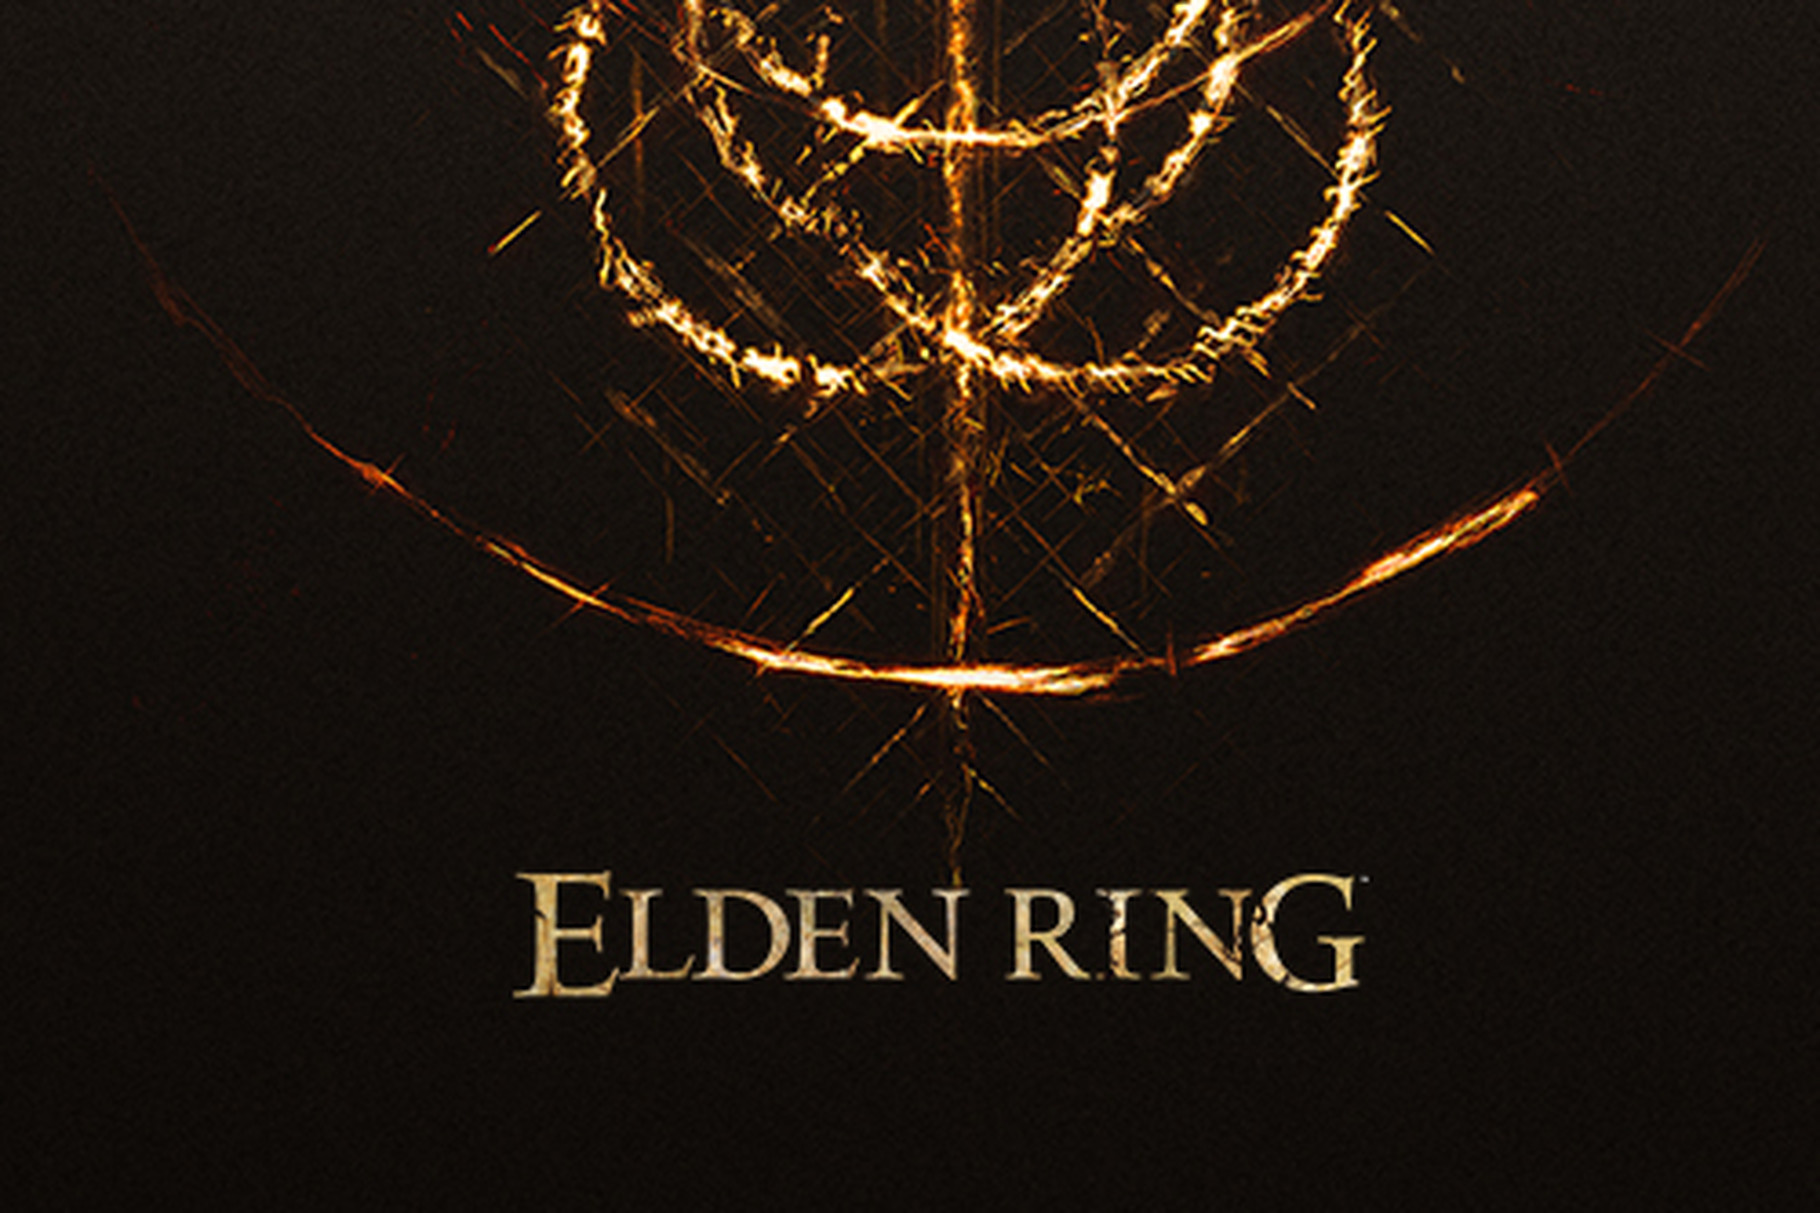 Elder Ring George R.R. Martin